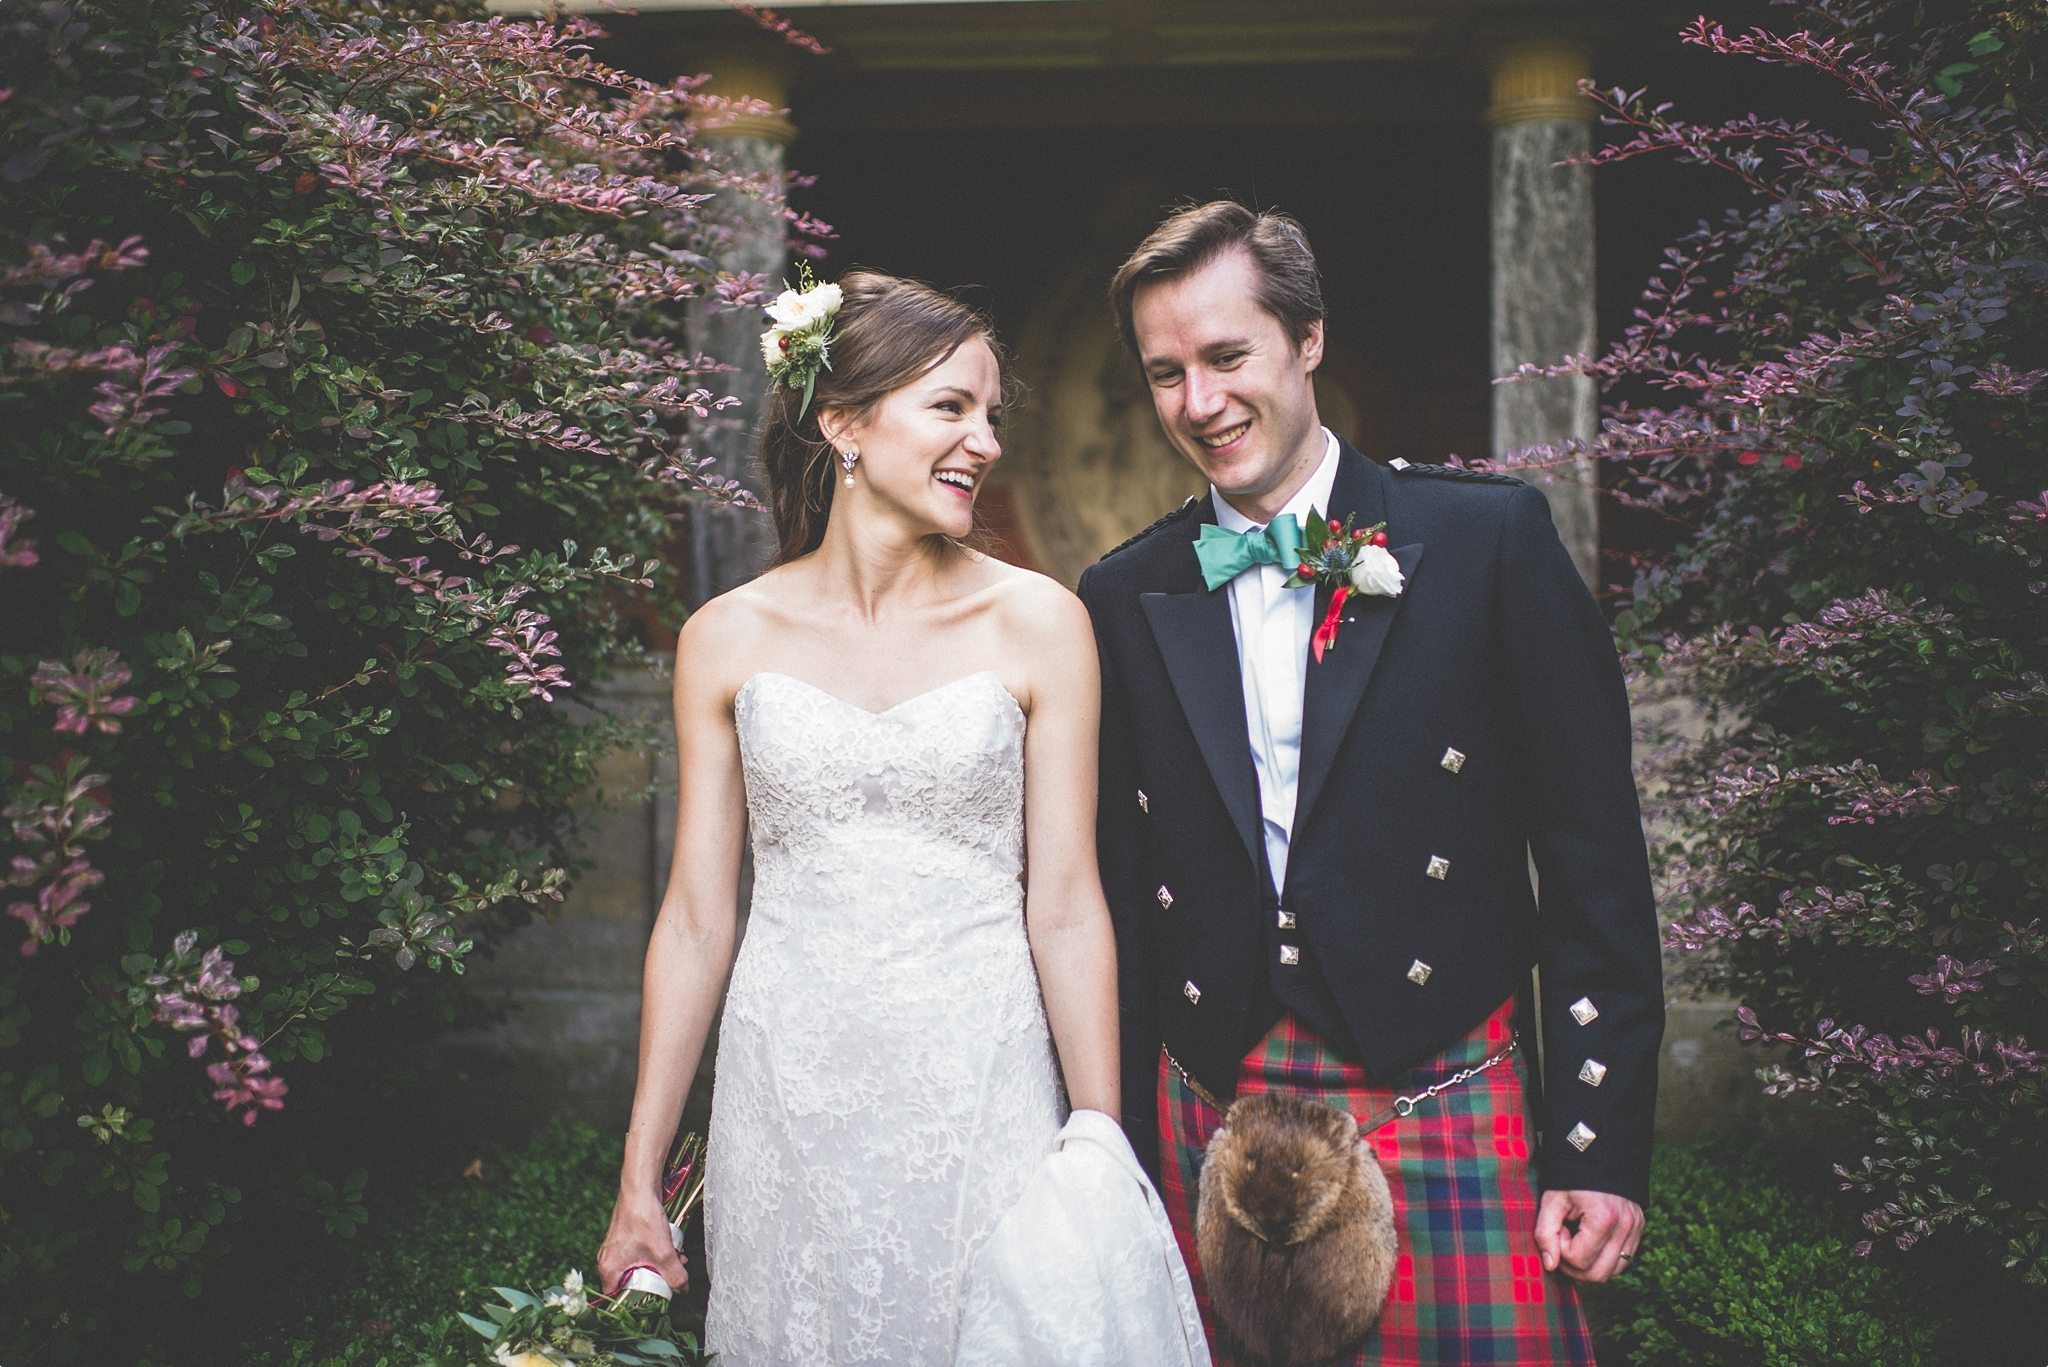 Bride and groom smiling at each other at their Elvetham Hotel Kilts White Lace and Red Pumps Luxury Wedding